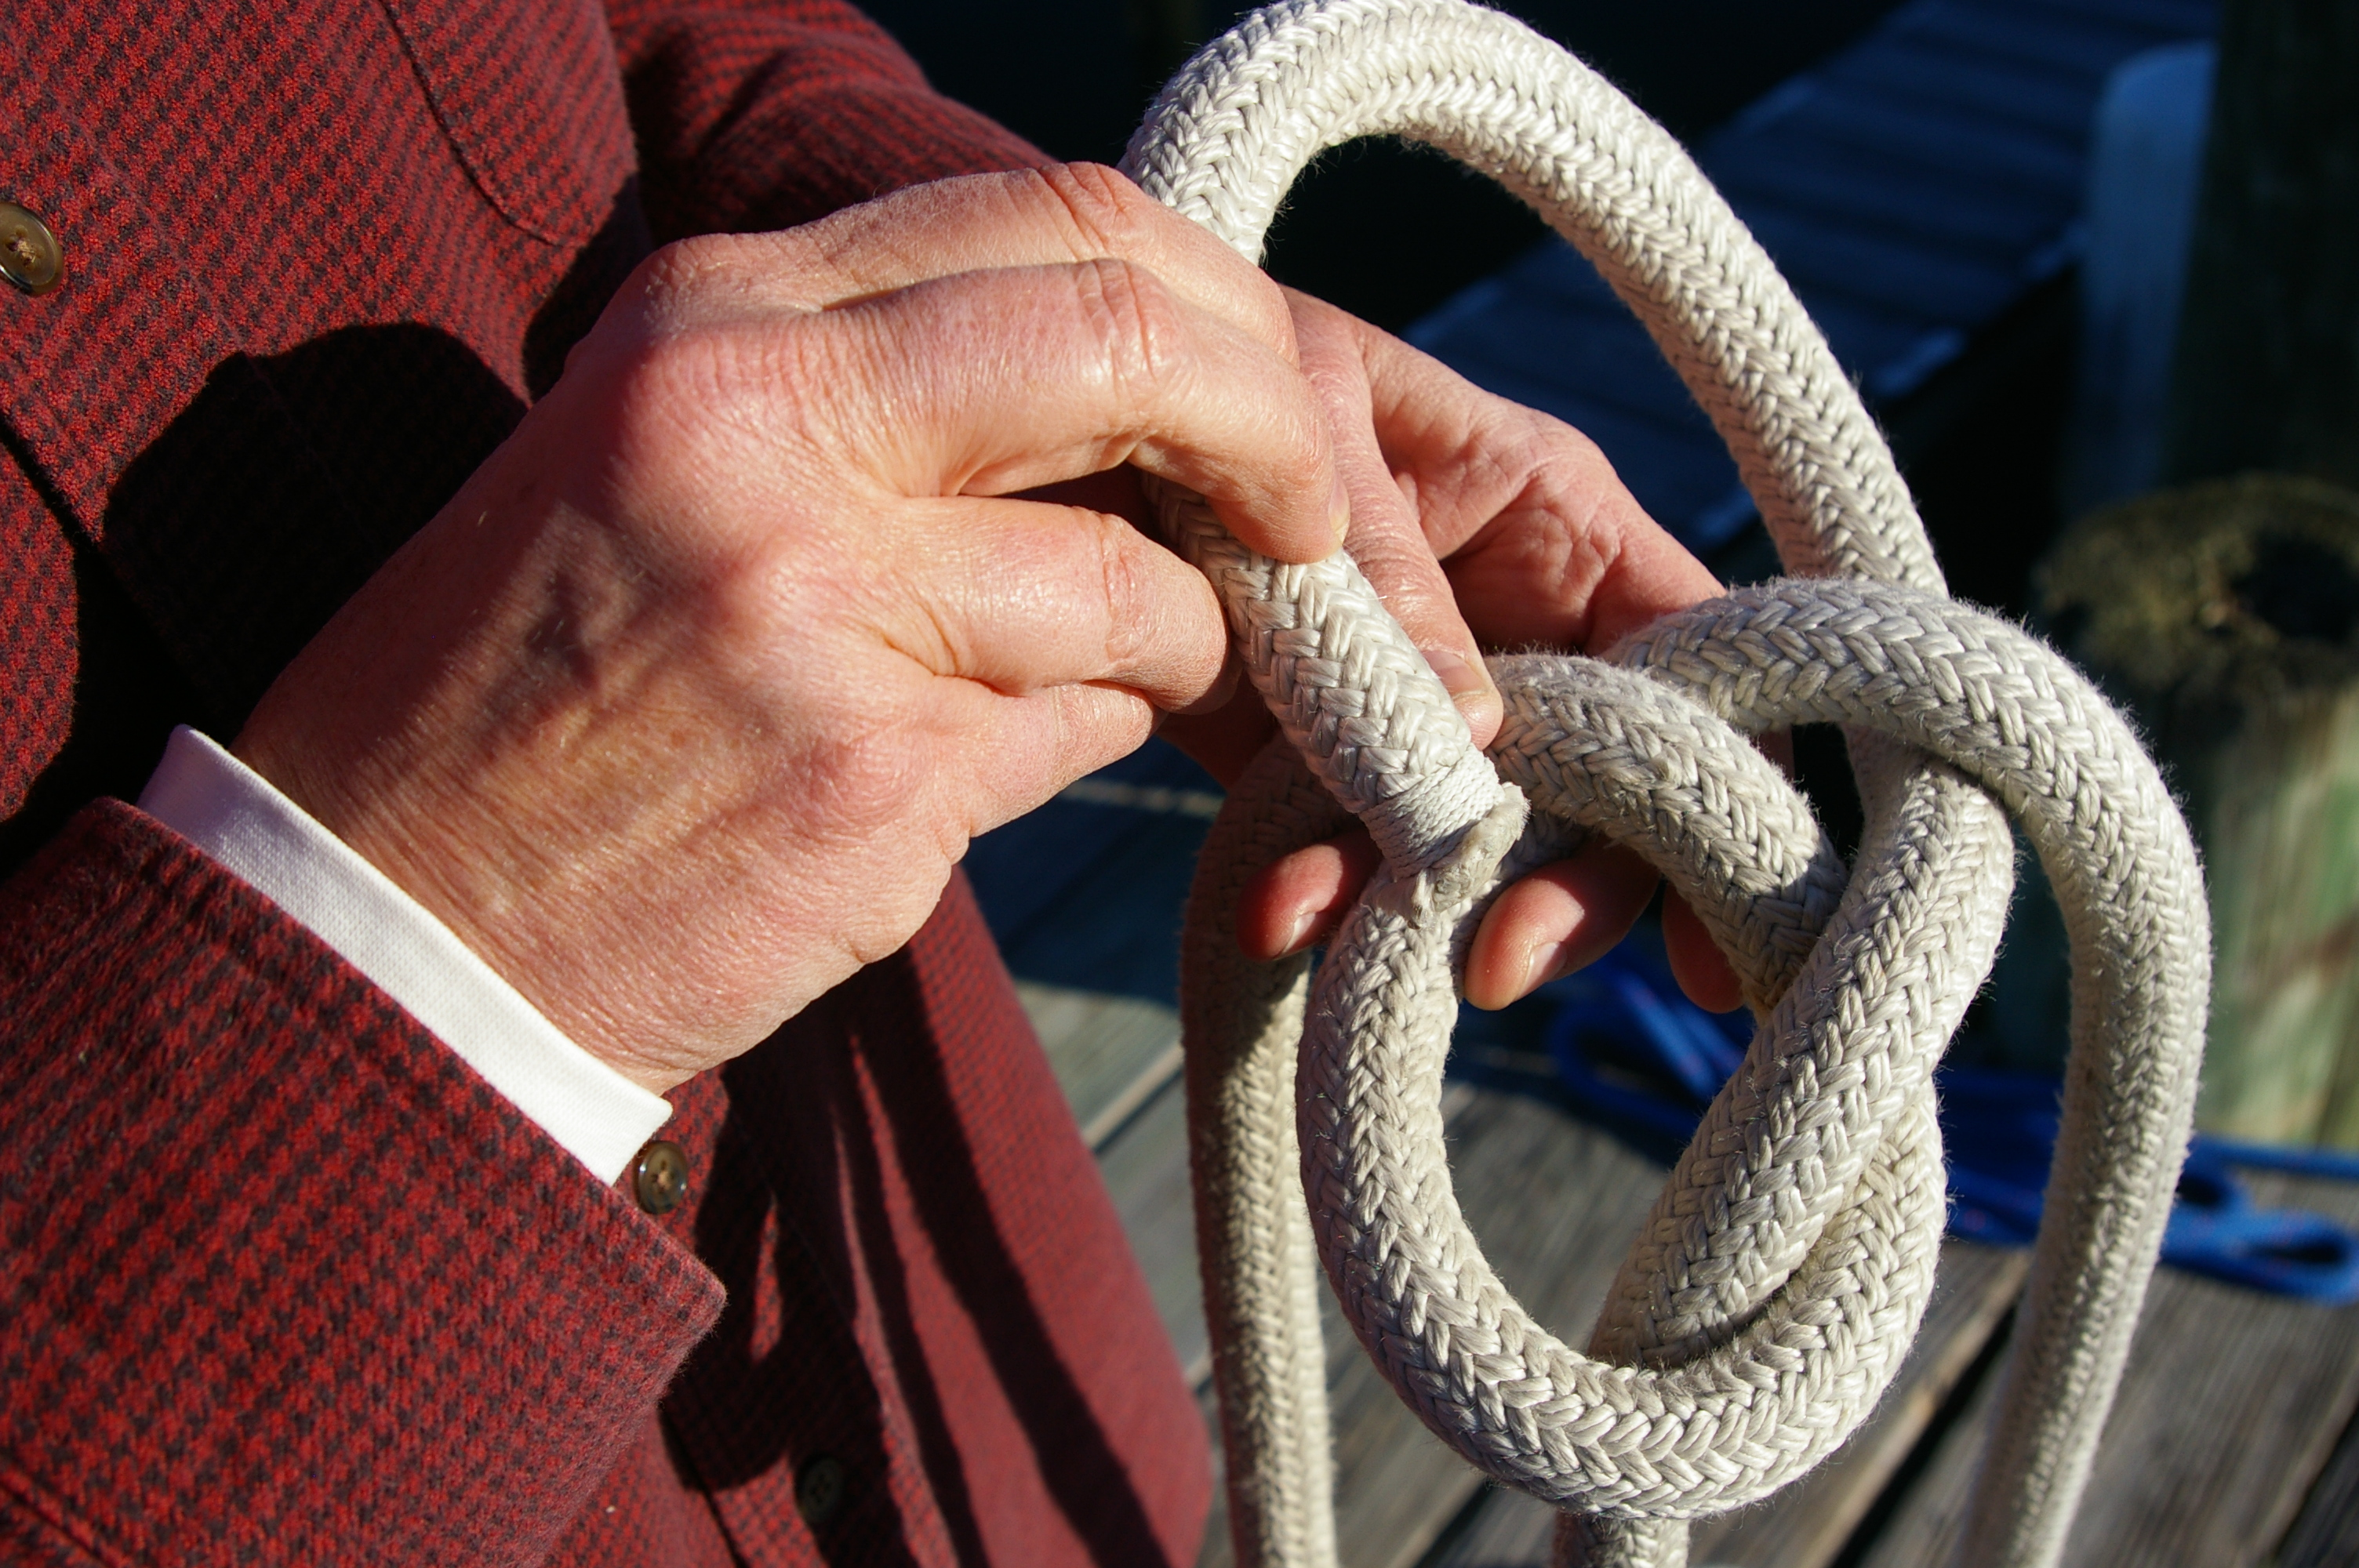 Dvd Training Video Trawler Delivery Great Loop Seminars Gulfcoast Water Bowline Knot How To Tie A Boating Knots Misty Moose Learns Why Is An Essential Aboard When We Dock In New Location With Large Pilings Can Create Enough